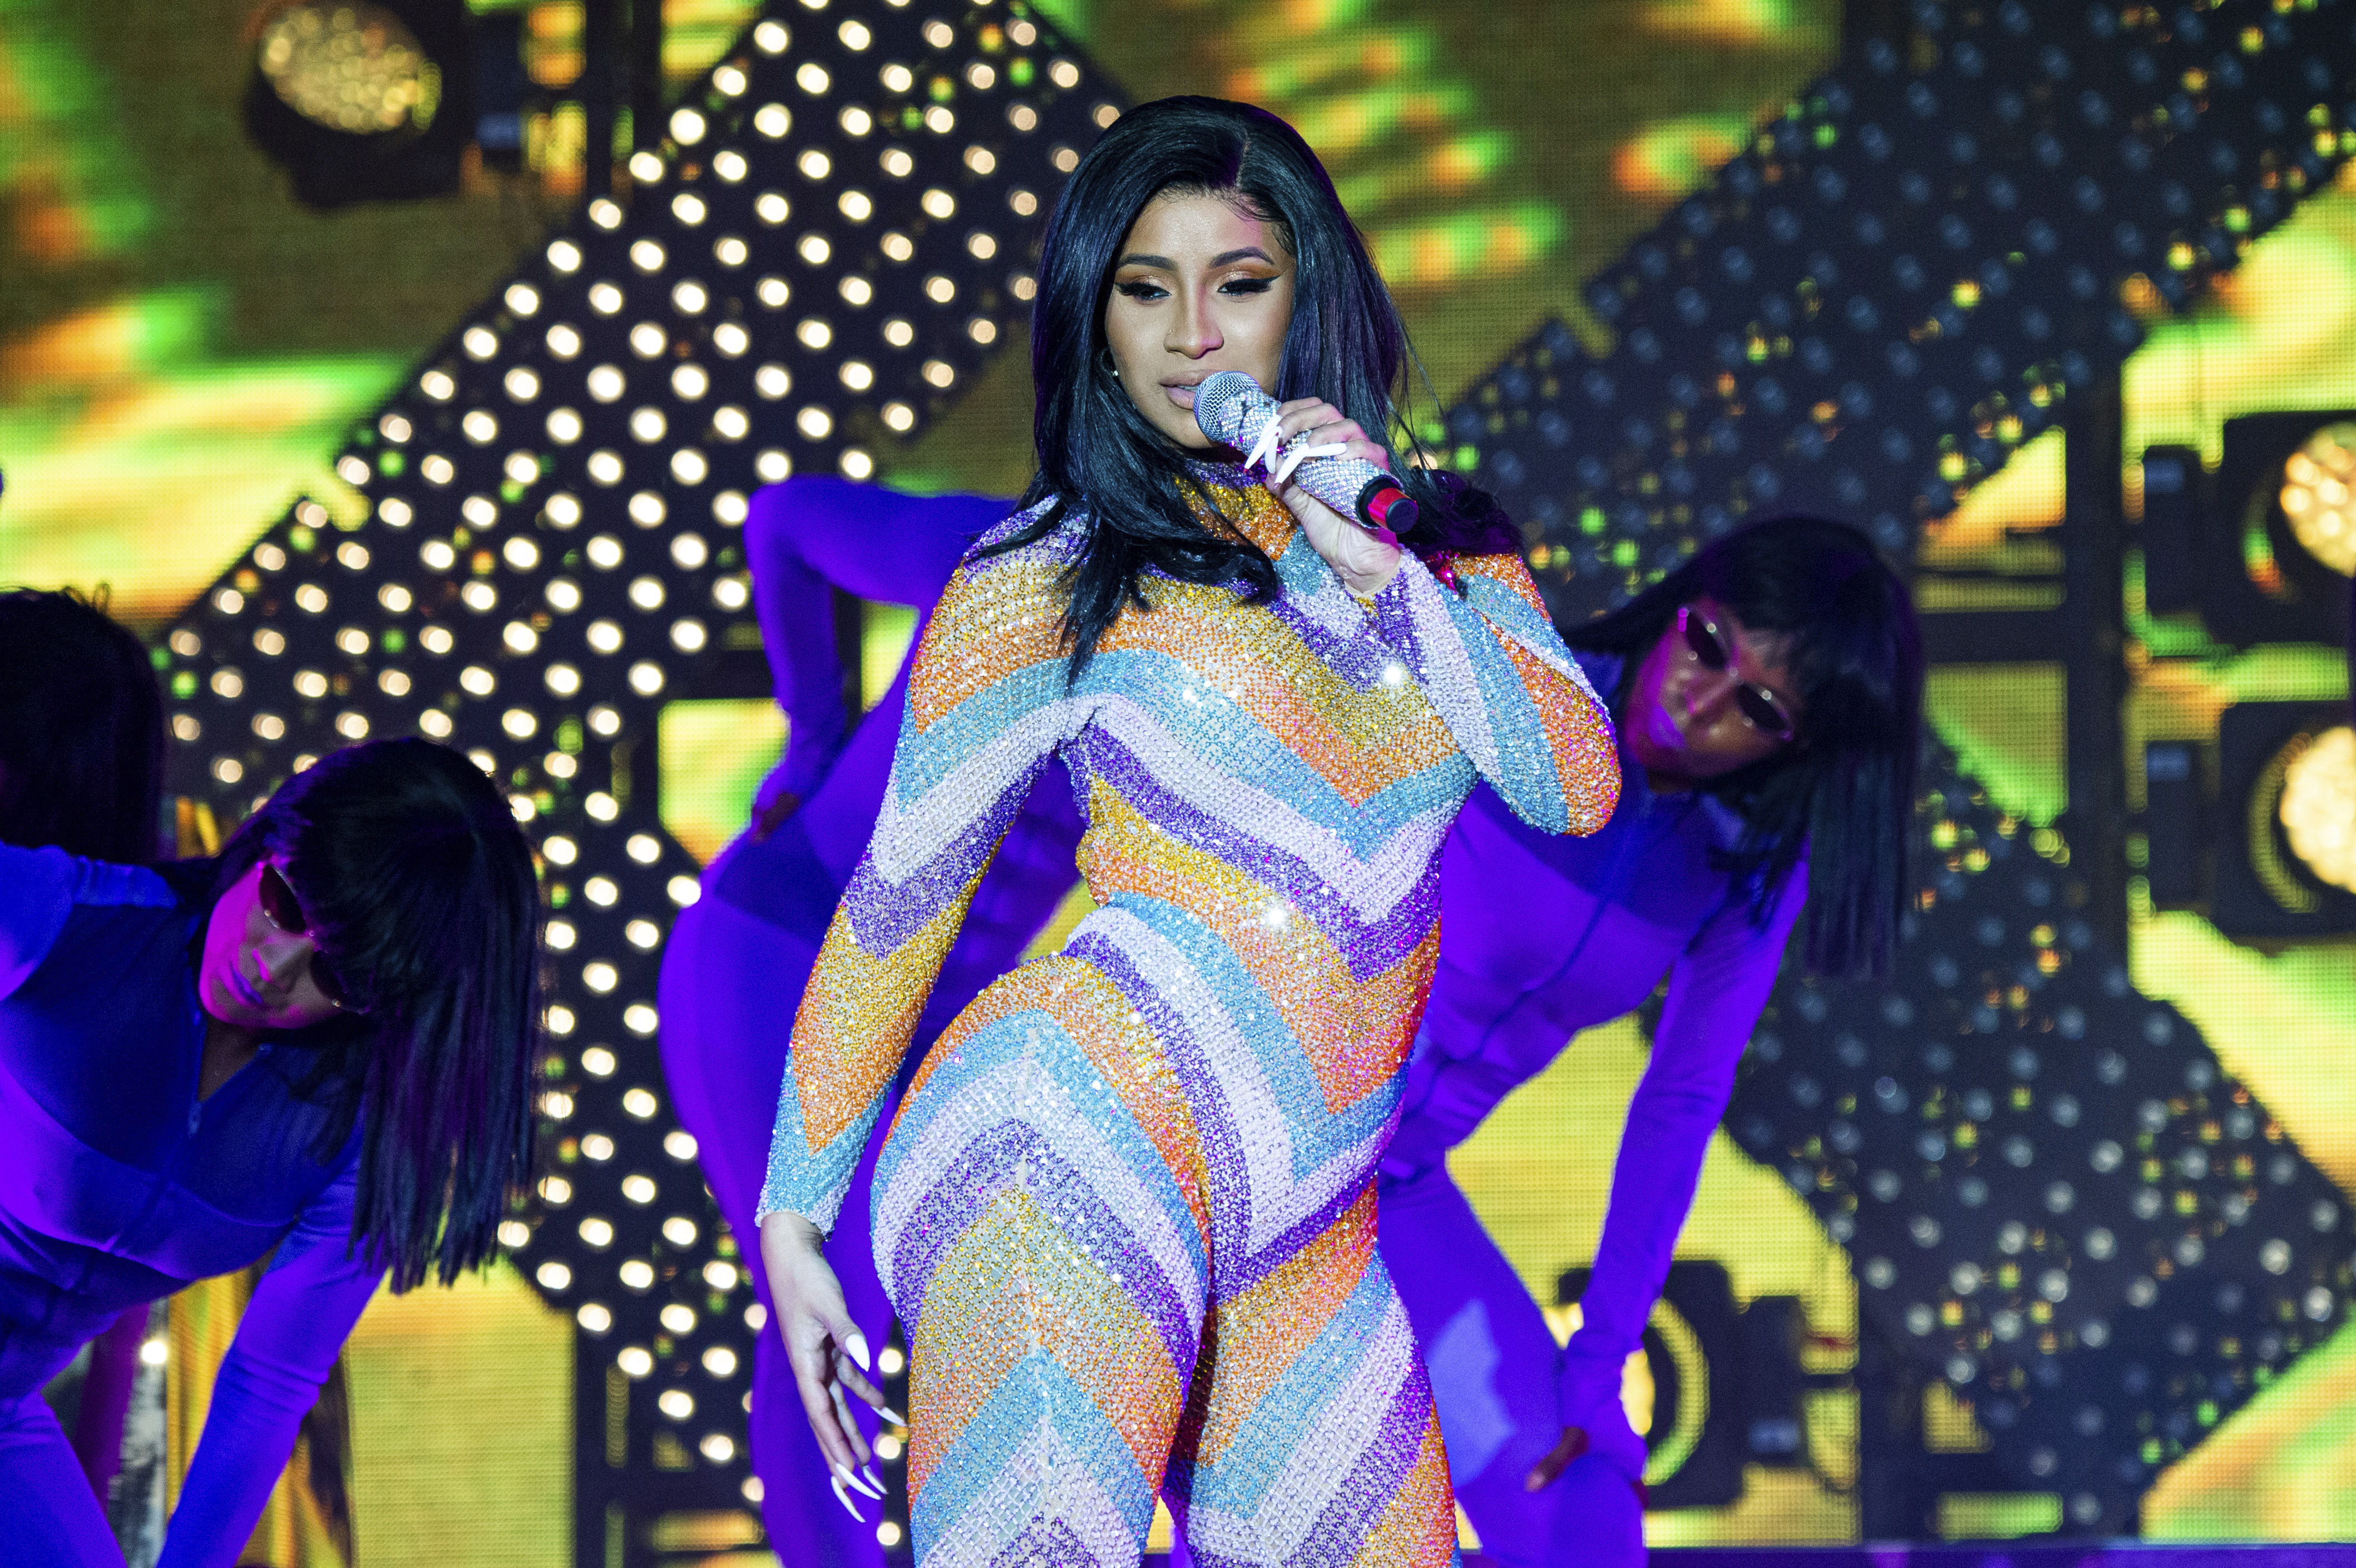 Cardi B managed to split her jumpsuit with her energetic stage antics. Credit: PA